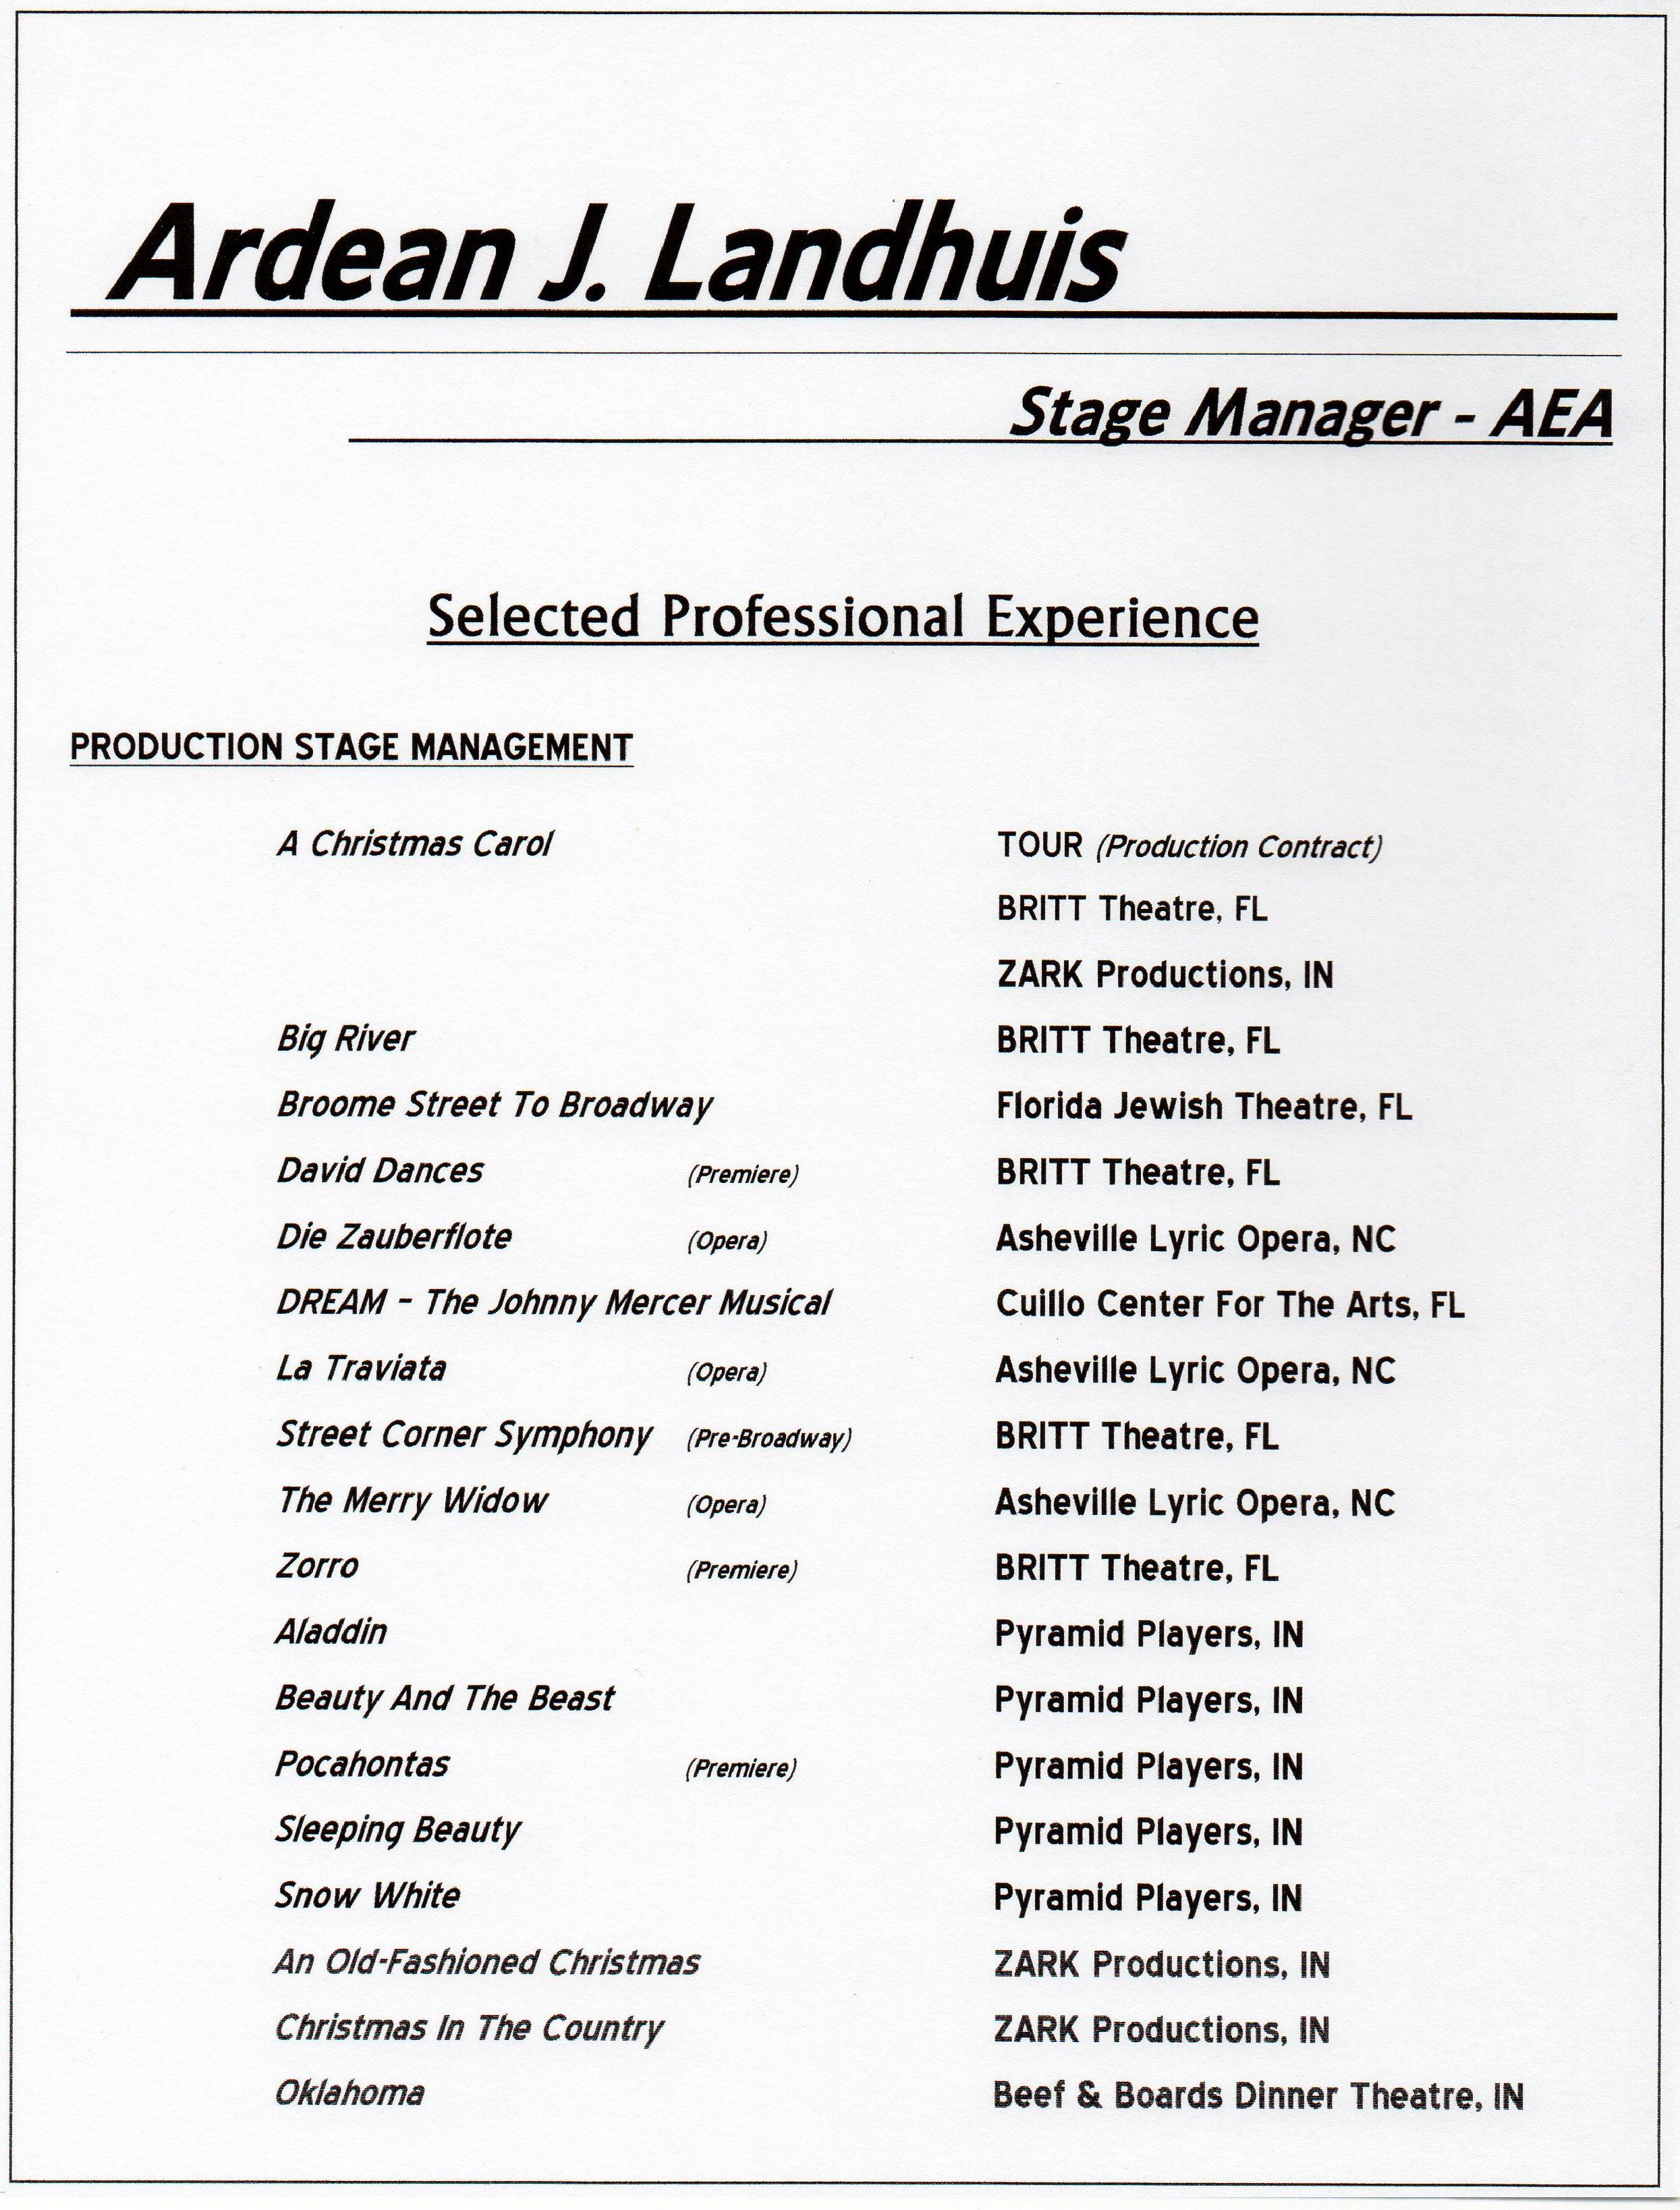 stagehand resume examples stage design resume examples performing please contact me for full resume references schedule availability